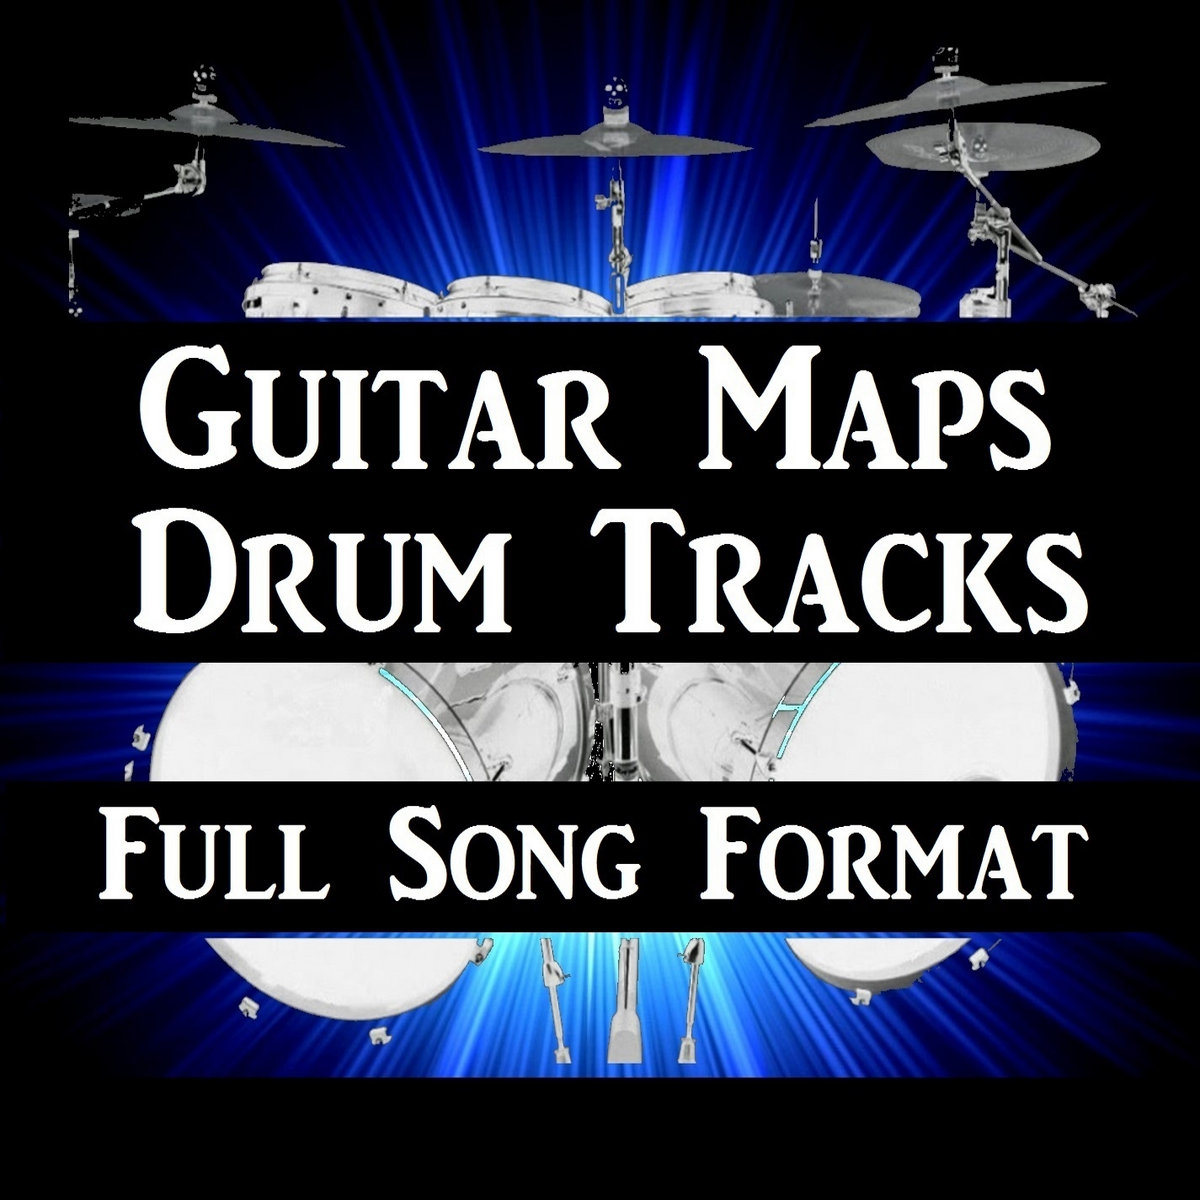 Slow Blues Drum Beat 60 BPM Song Style Drum Track #222